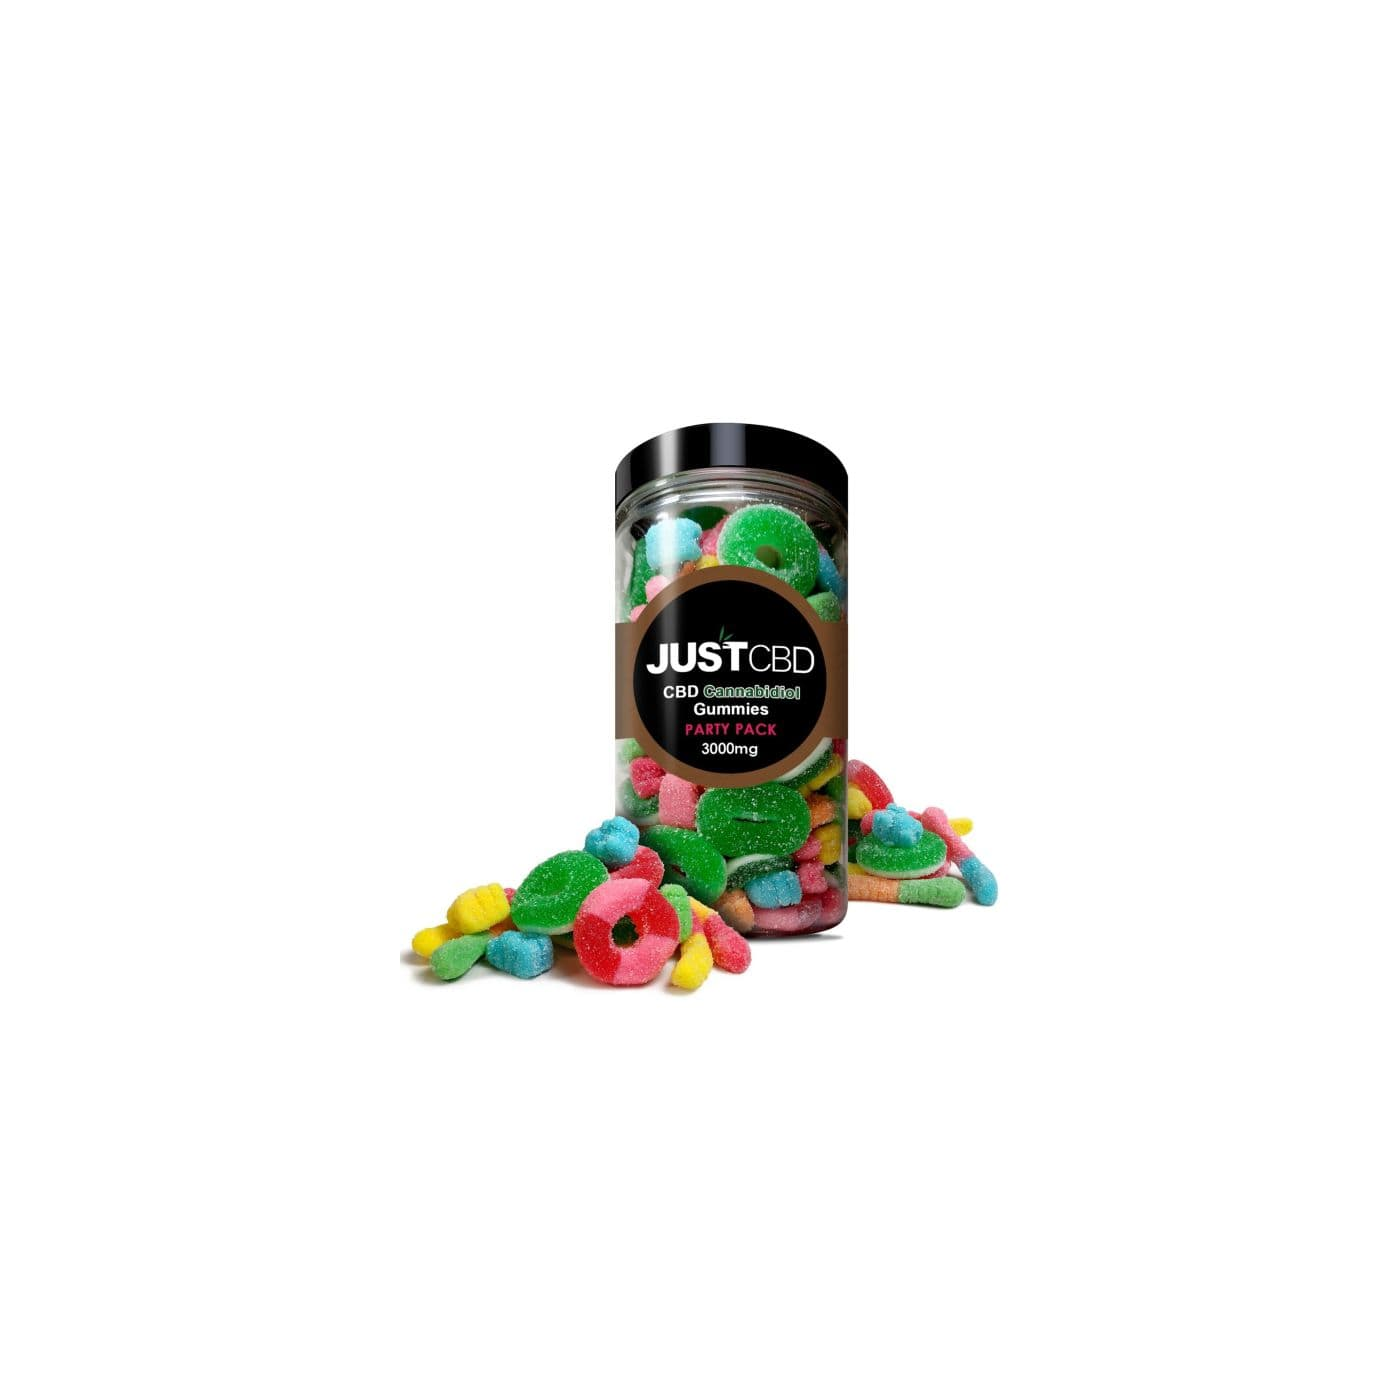 JustCBD Gummies Party Variety Pack